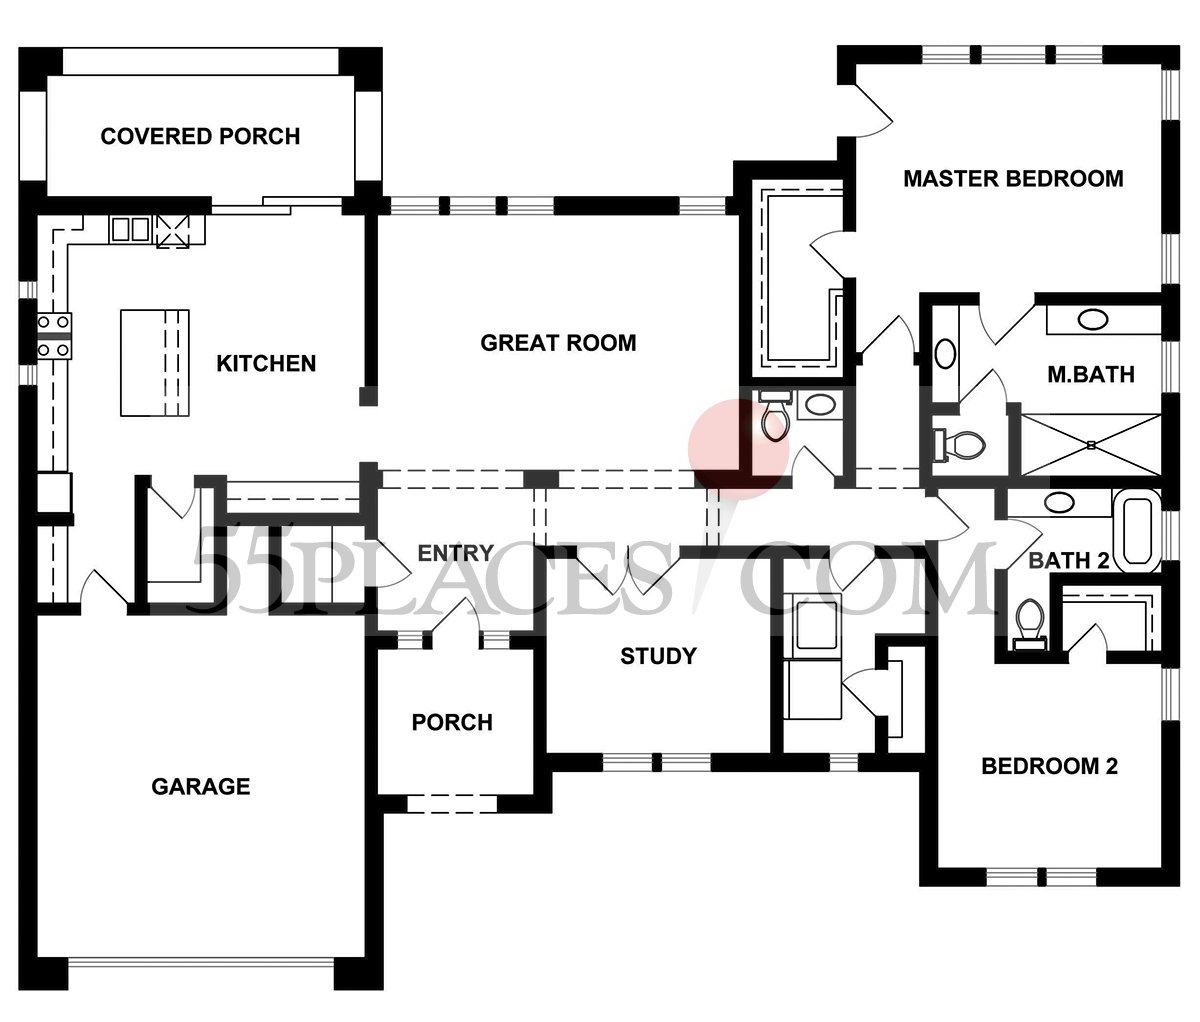 Bryant Floorplan 2335 Sq Ft Kissing Tree – Kissing Tree Site Plan